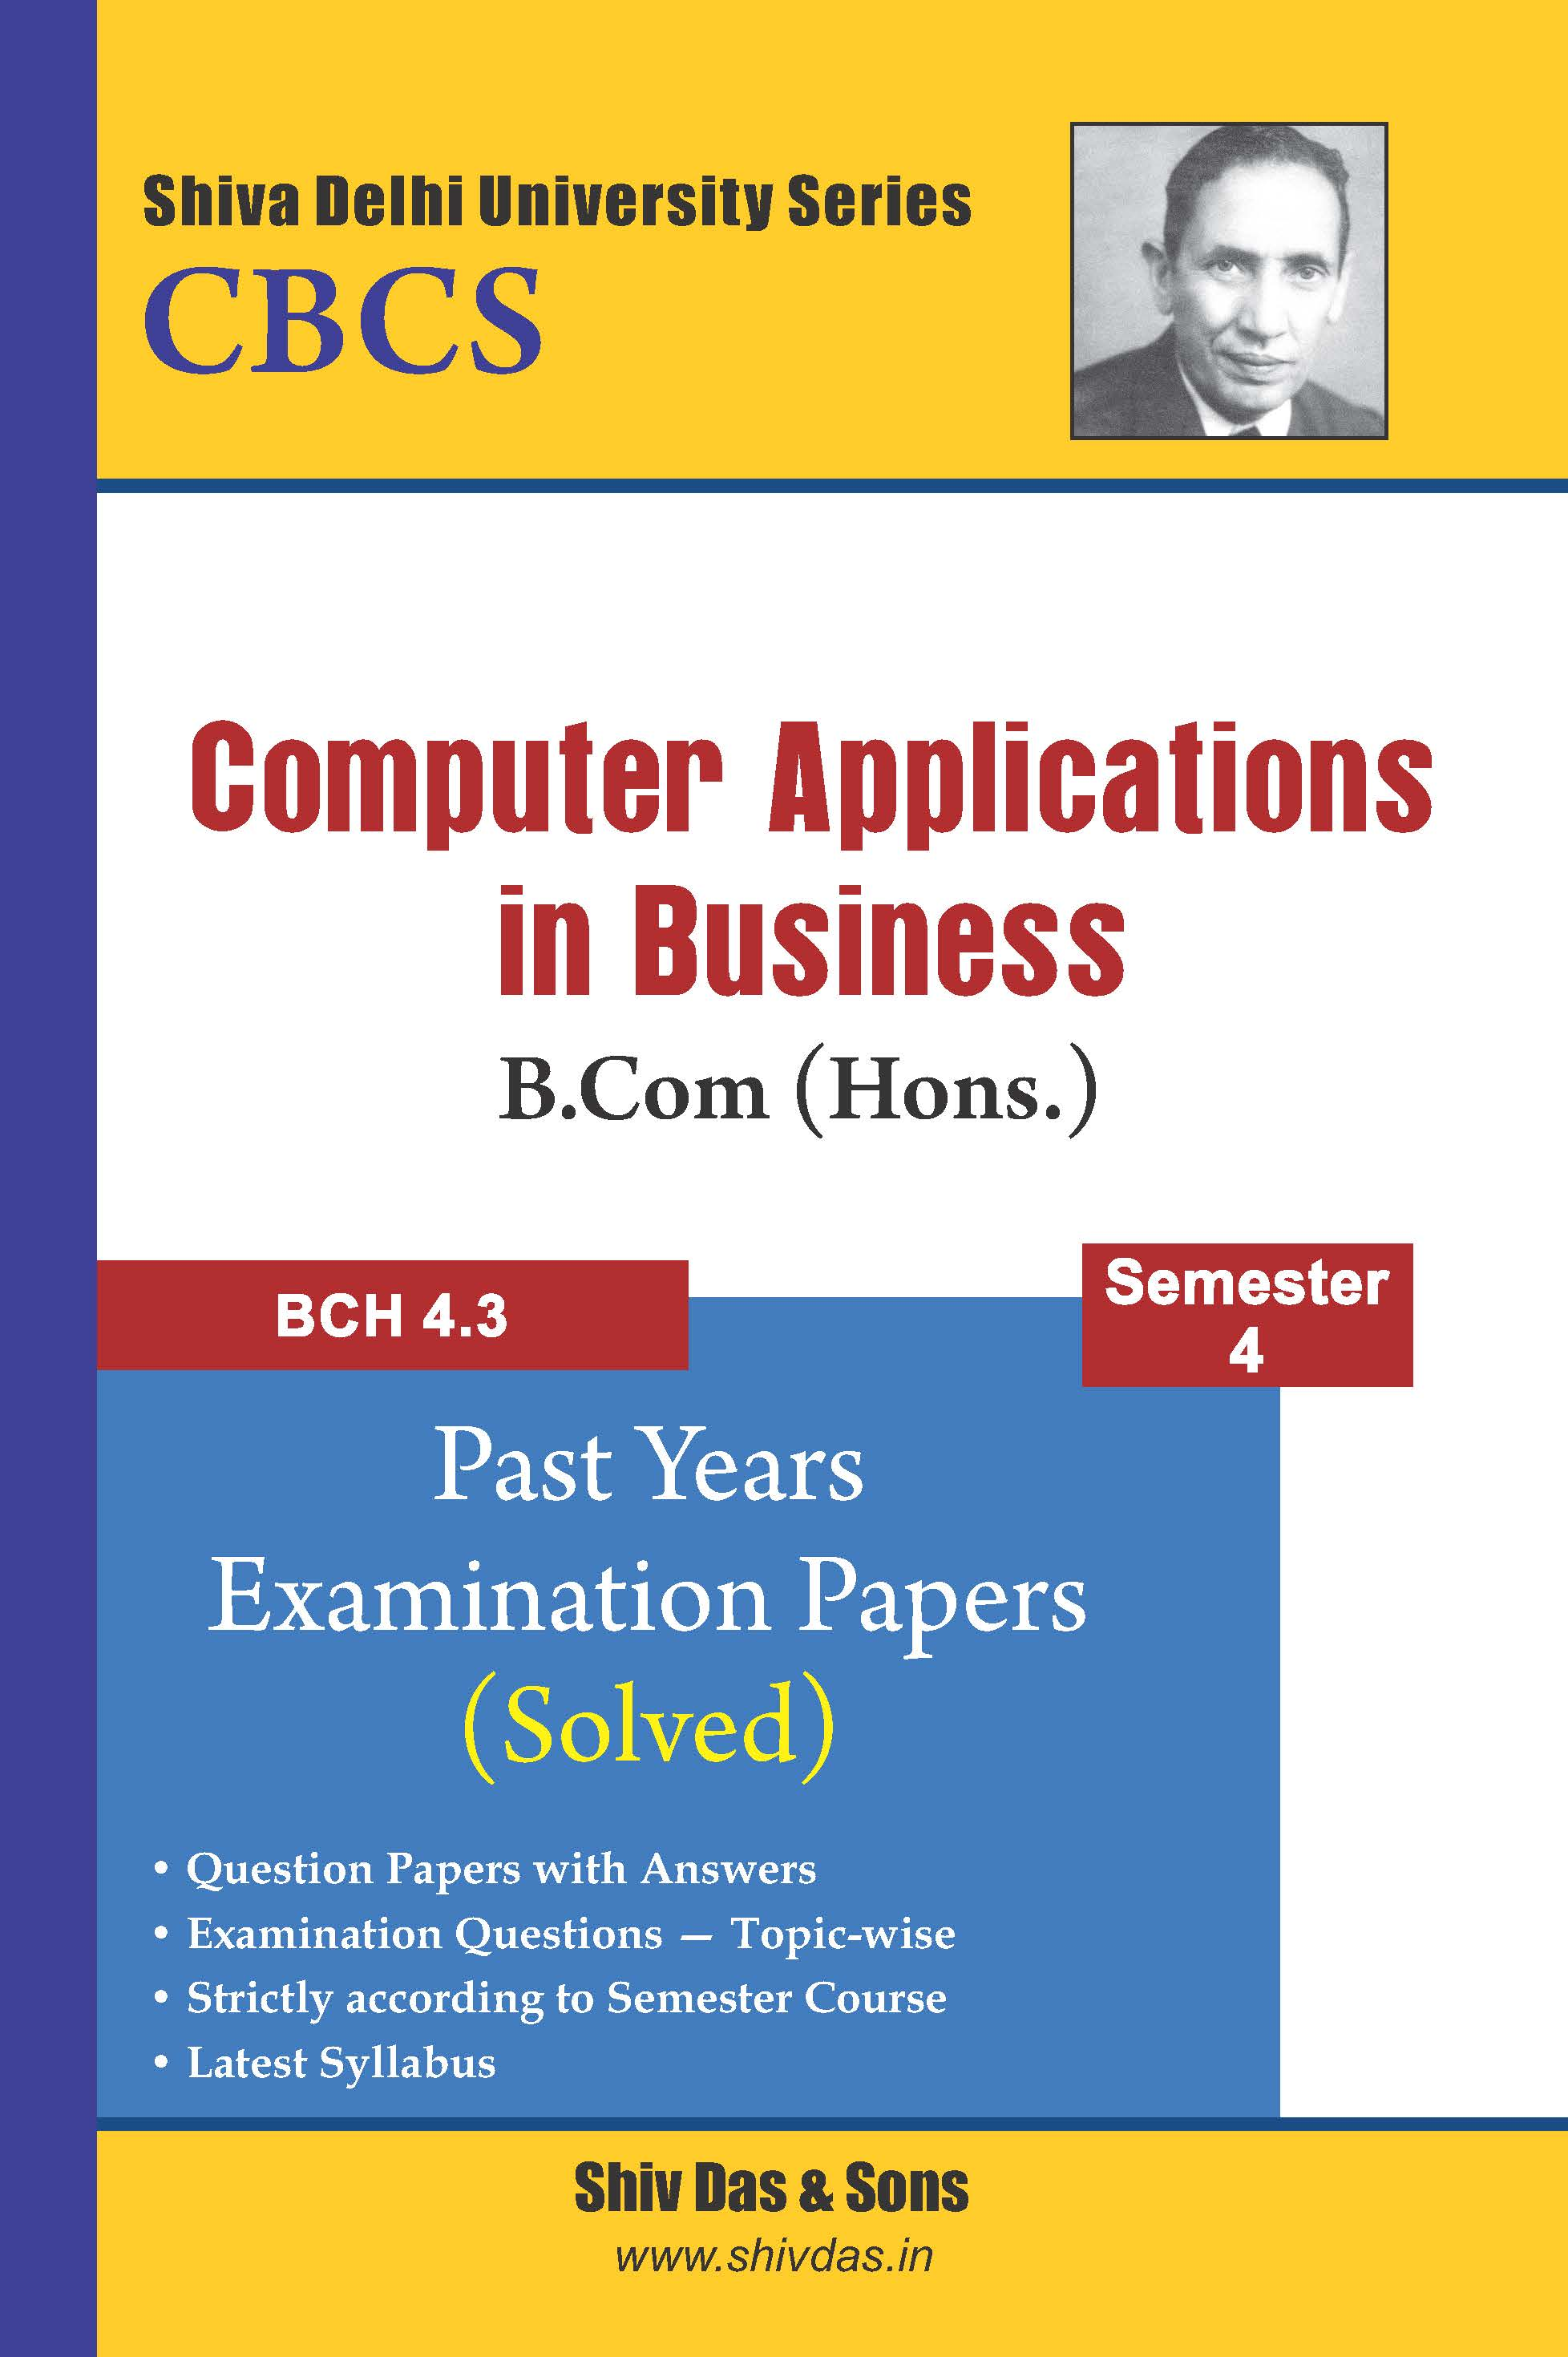 Computer Applications in Business for B.Com Hons Semester 4